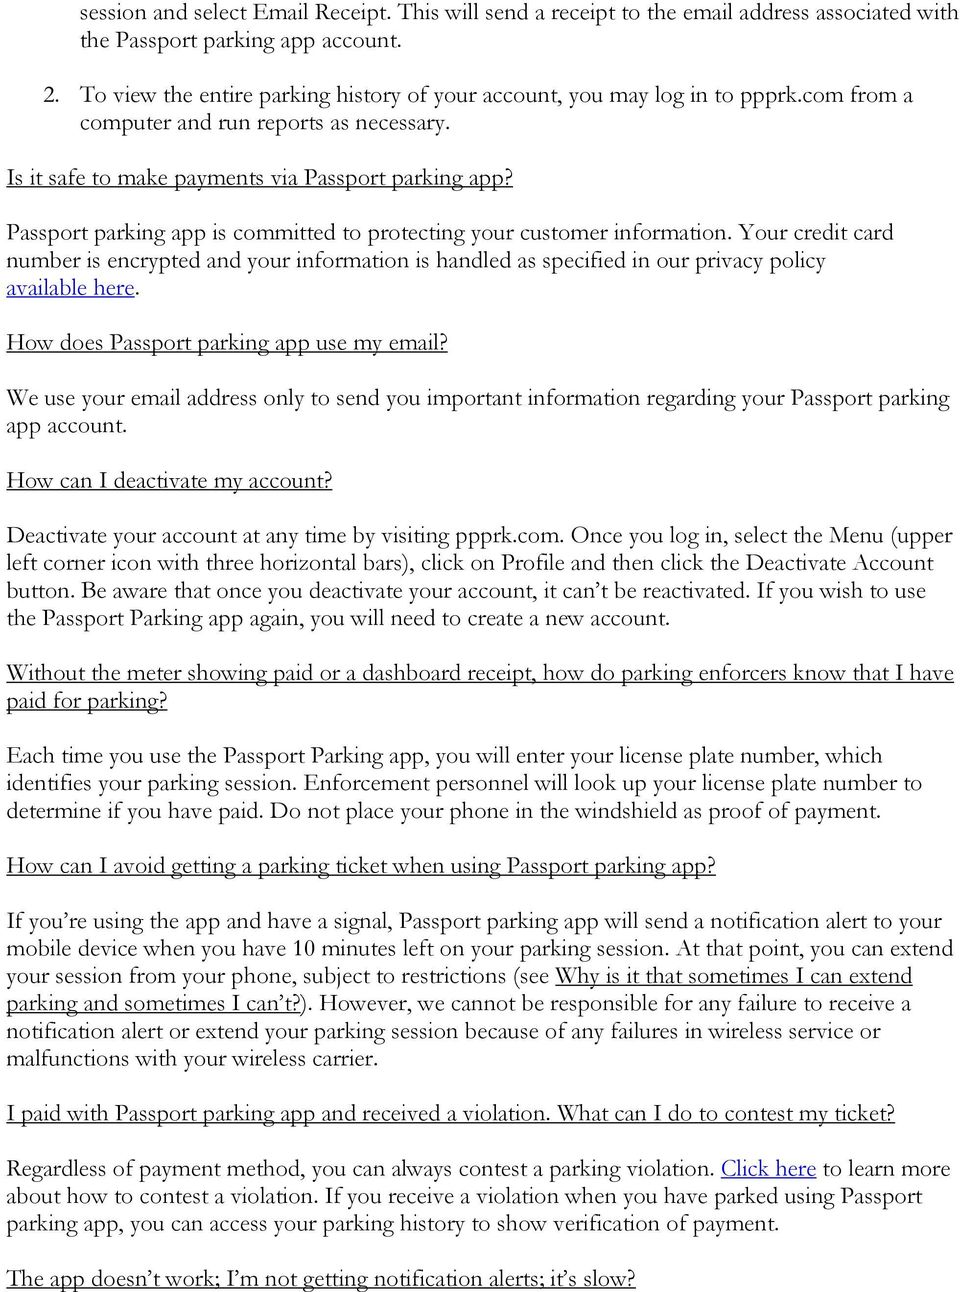 Passport parking app Frequently Asked Questions - PDF